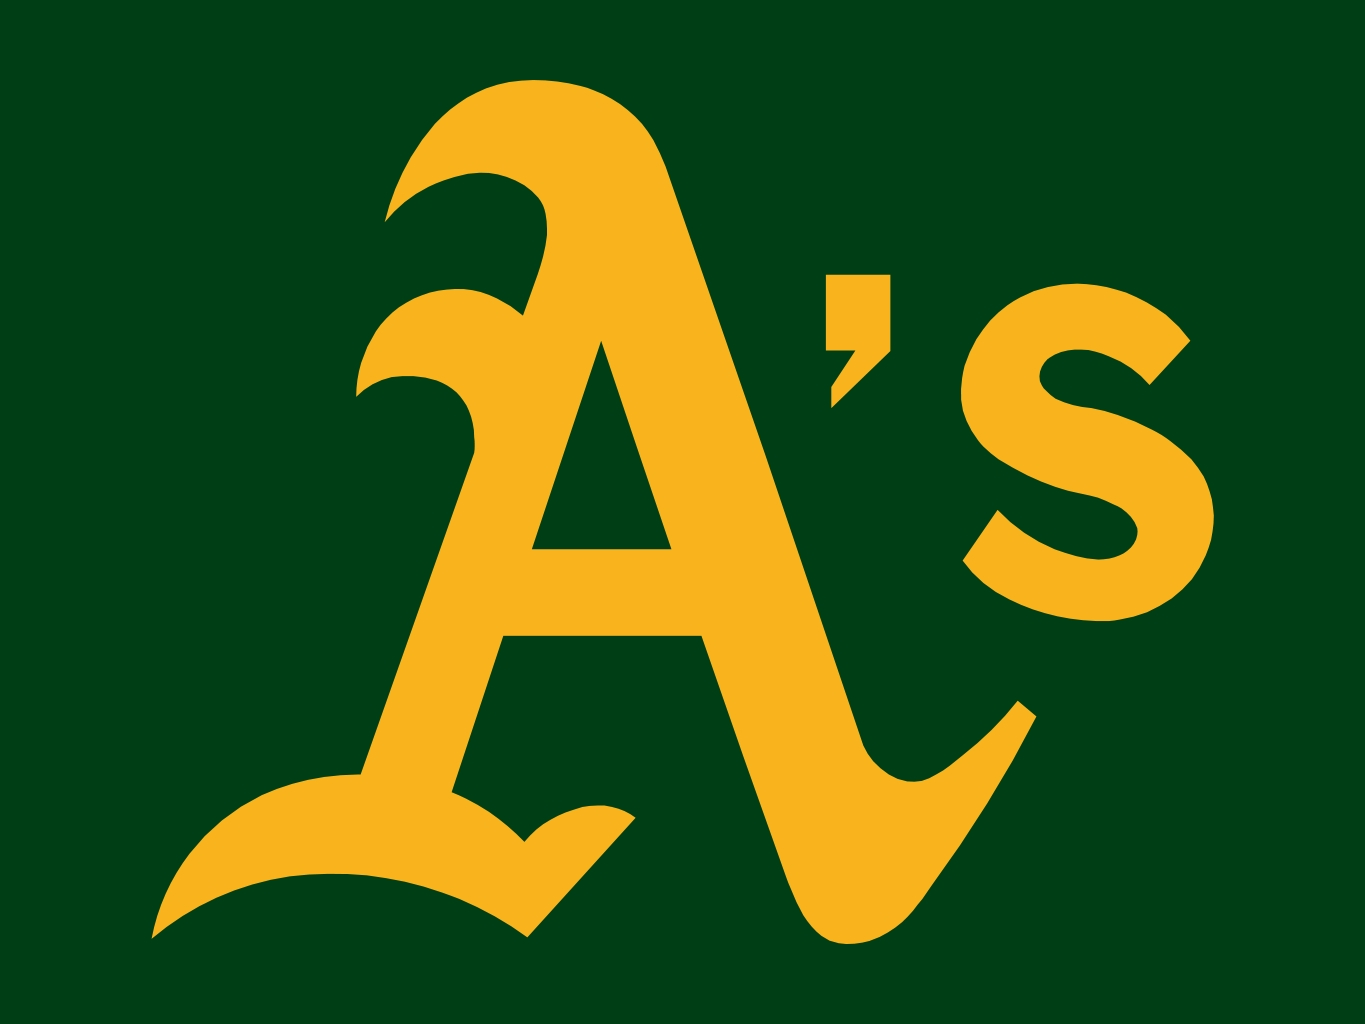 Oakland Athletics Wallpaper 11   1365 X 1024 stmednet 1365x1024